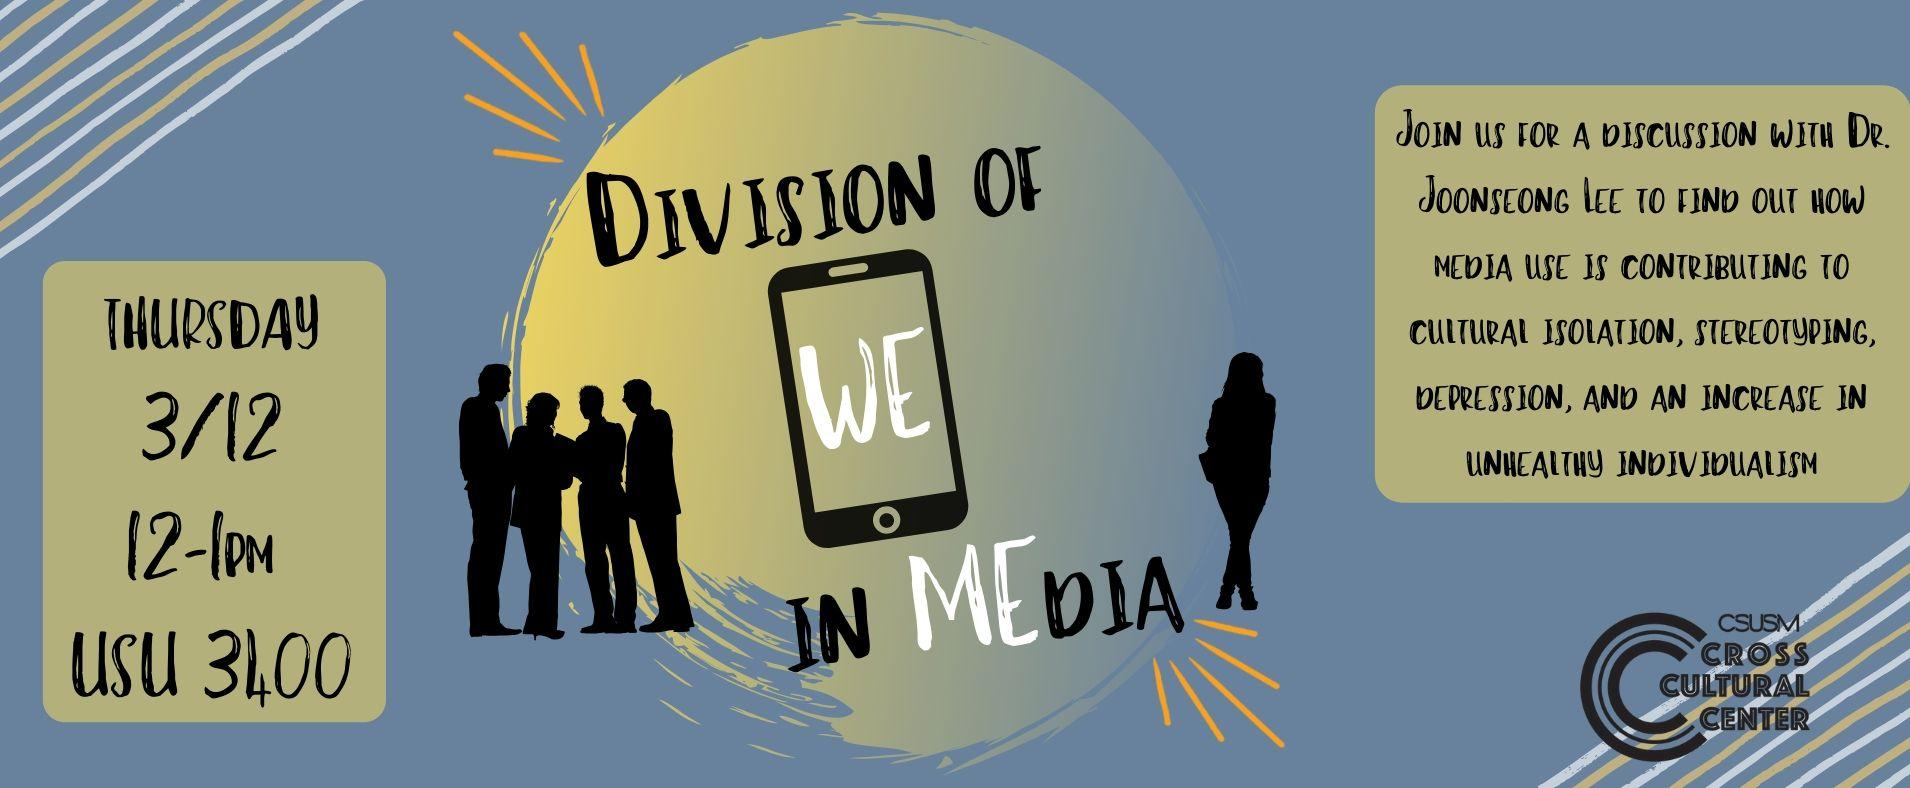 Critical Cougars - Division of WE in MEdia - Thursday March 12, 2020 - 12PM to 1 PM - USU 3400